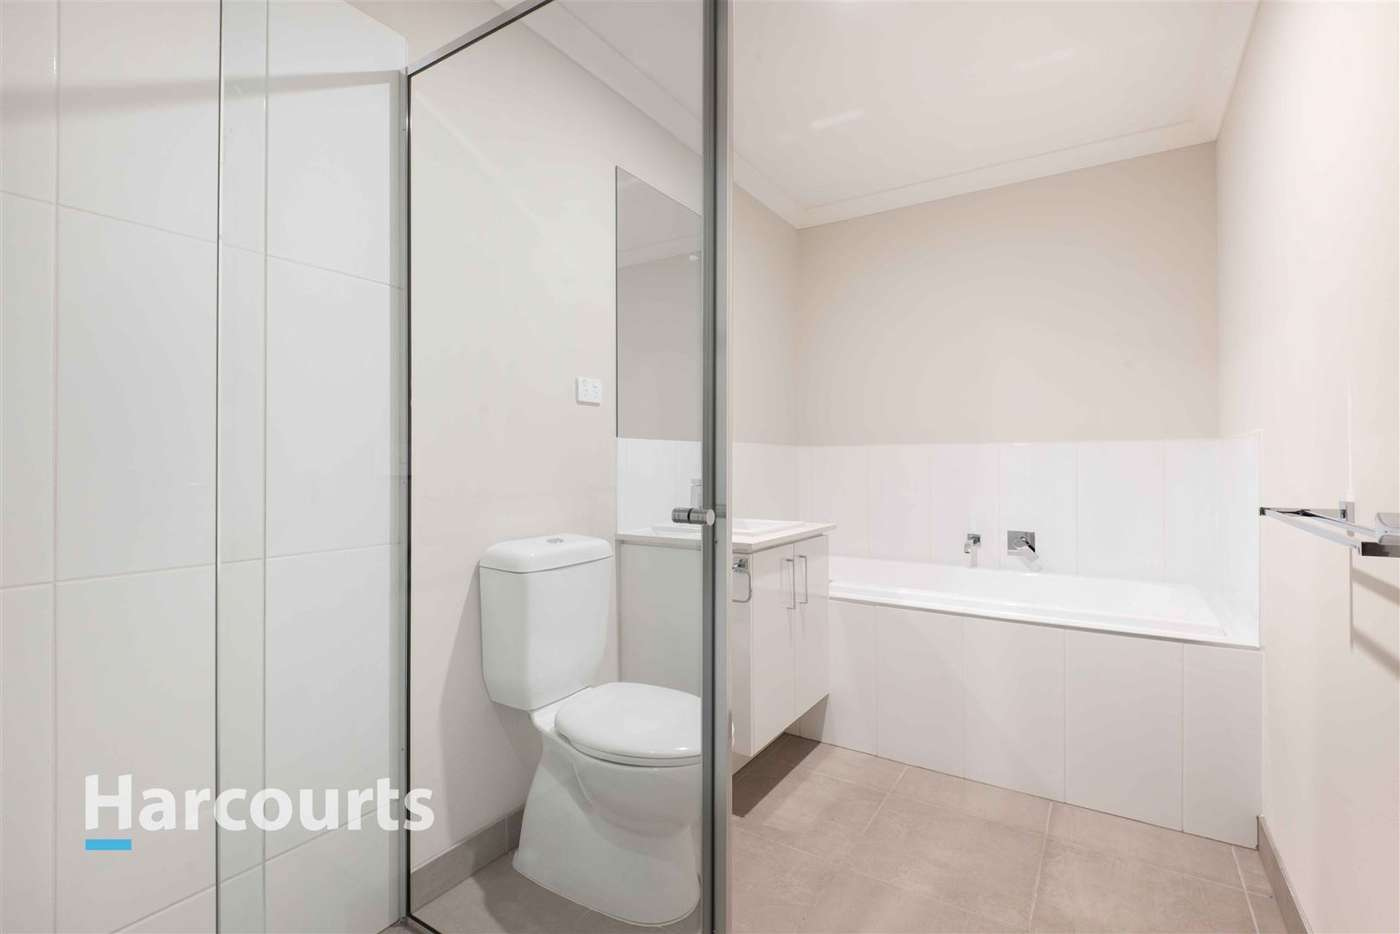 Sixth view of Homely house listing, 27 Australorp Drive, Clyde North VIC 3978